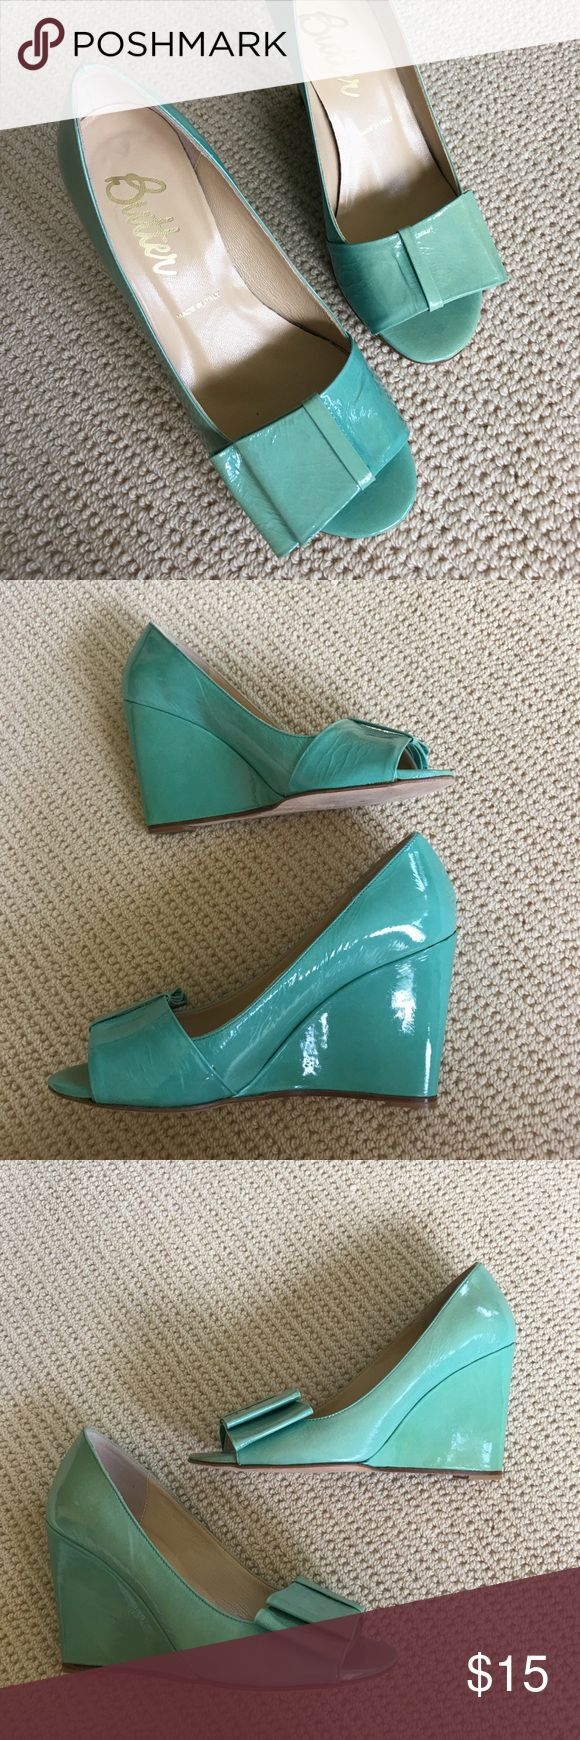 Turquoise wedge by Butter shoes Love these. They were used in a sunny display window and the top and outsides faded a bit, while the inside stayed true turquoise. They actually have a cool ombré look now. Worn once. Comes in original box. Made in Italy by Butter. Butter Shoes Shoes Wedges